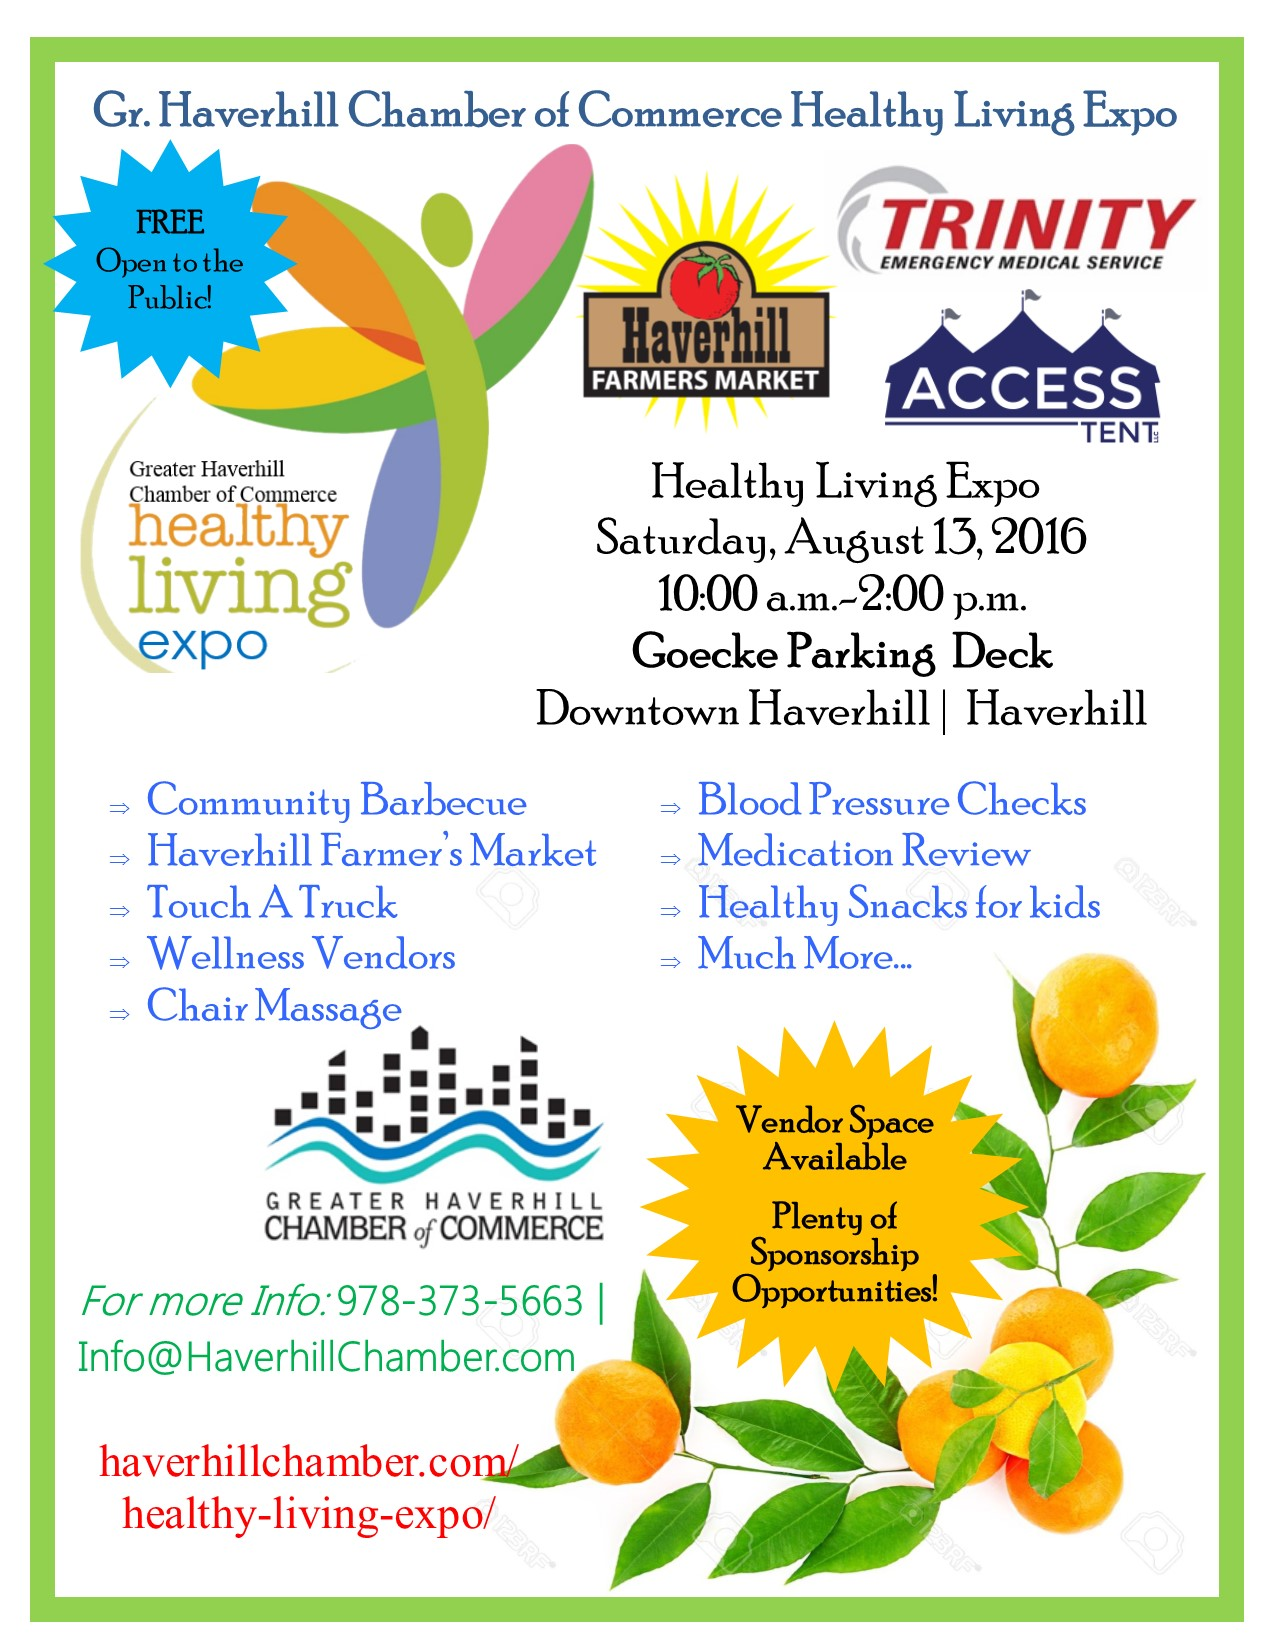 Greater Haverhill Chamber Readies for 2nd Annual Healthy Living Expo